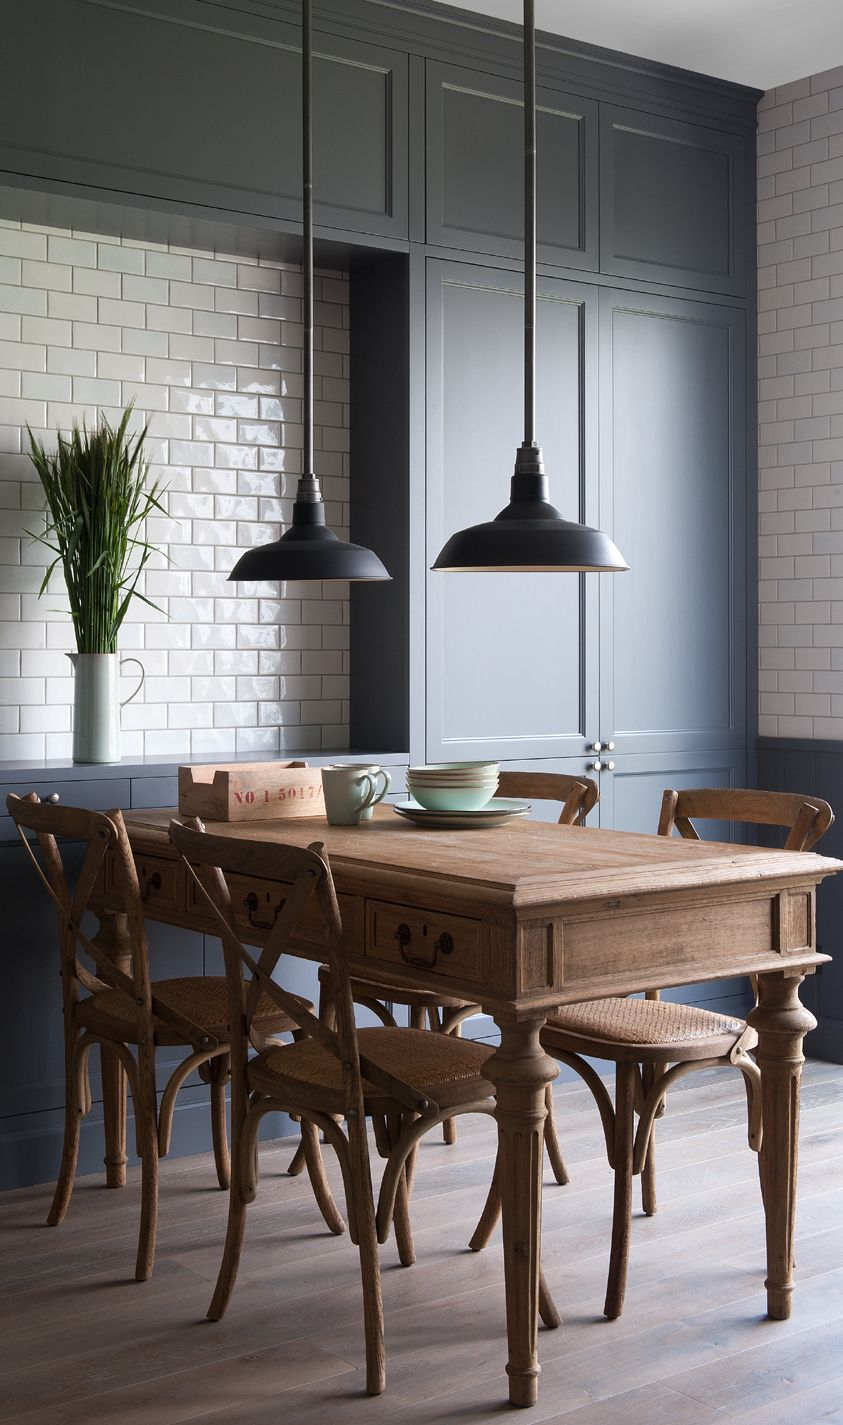 Grey cupboards black pendant lighting brown table and chairs